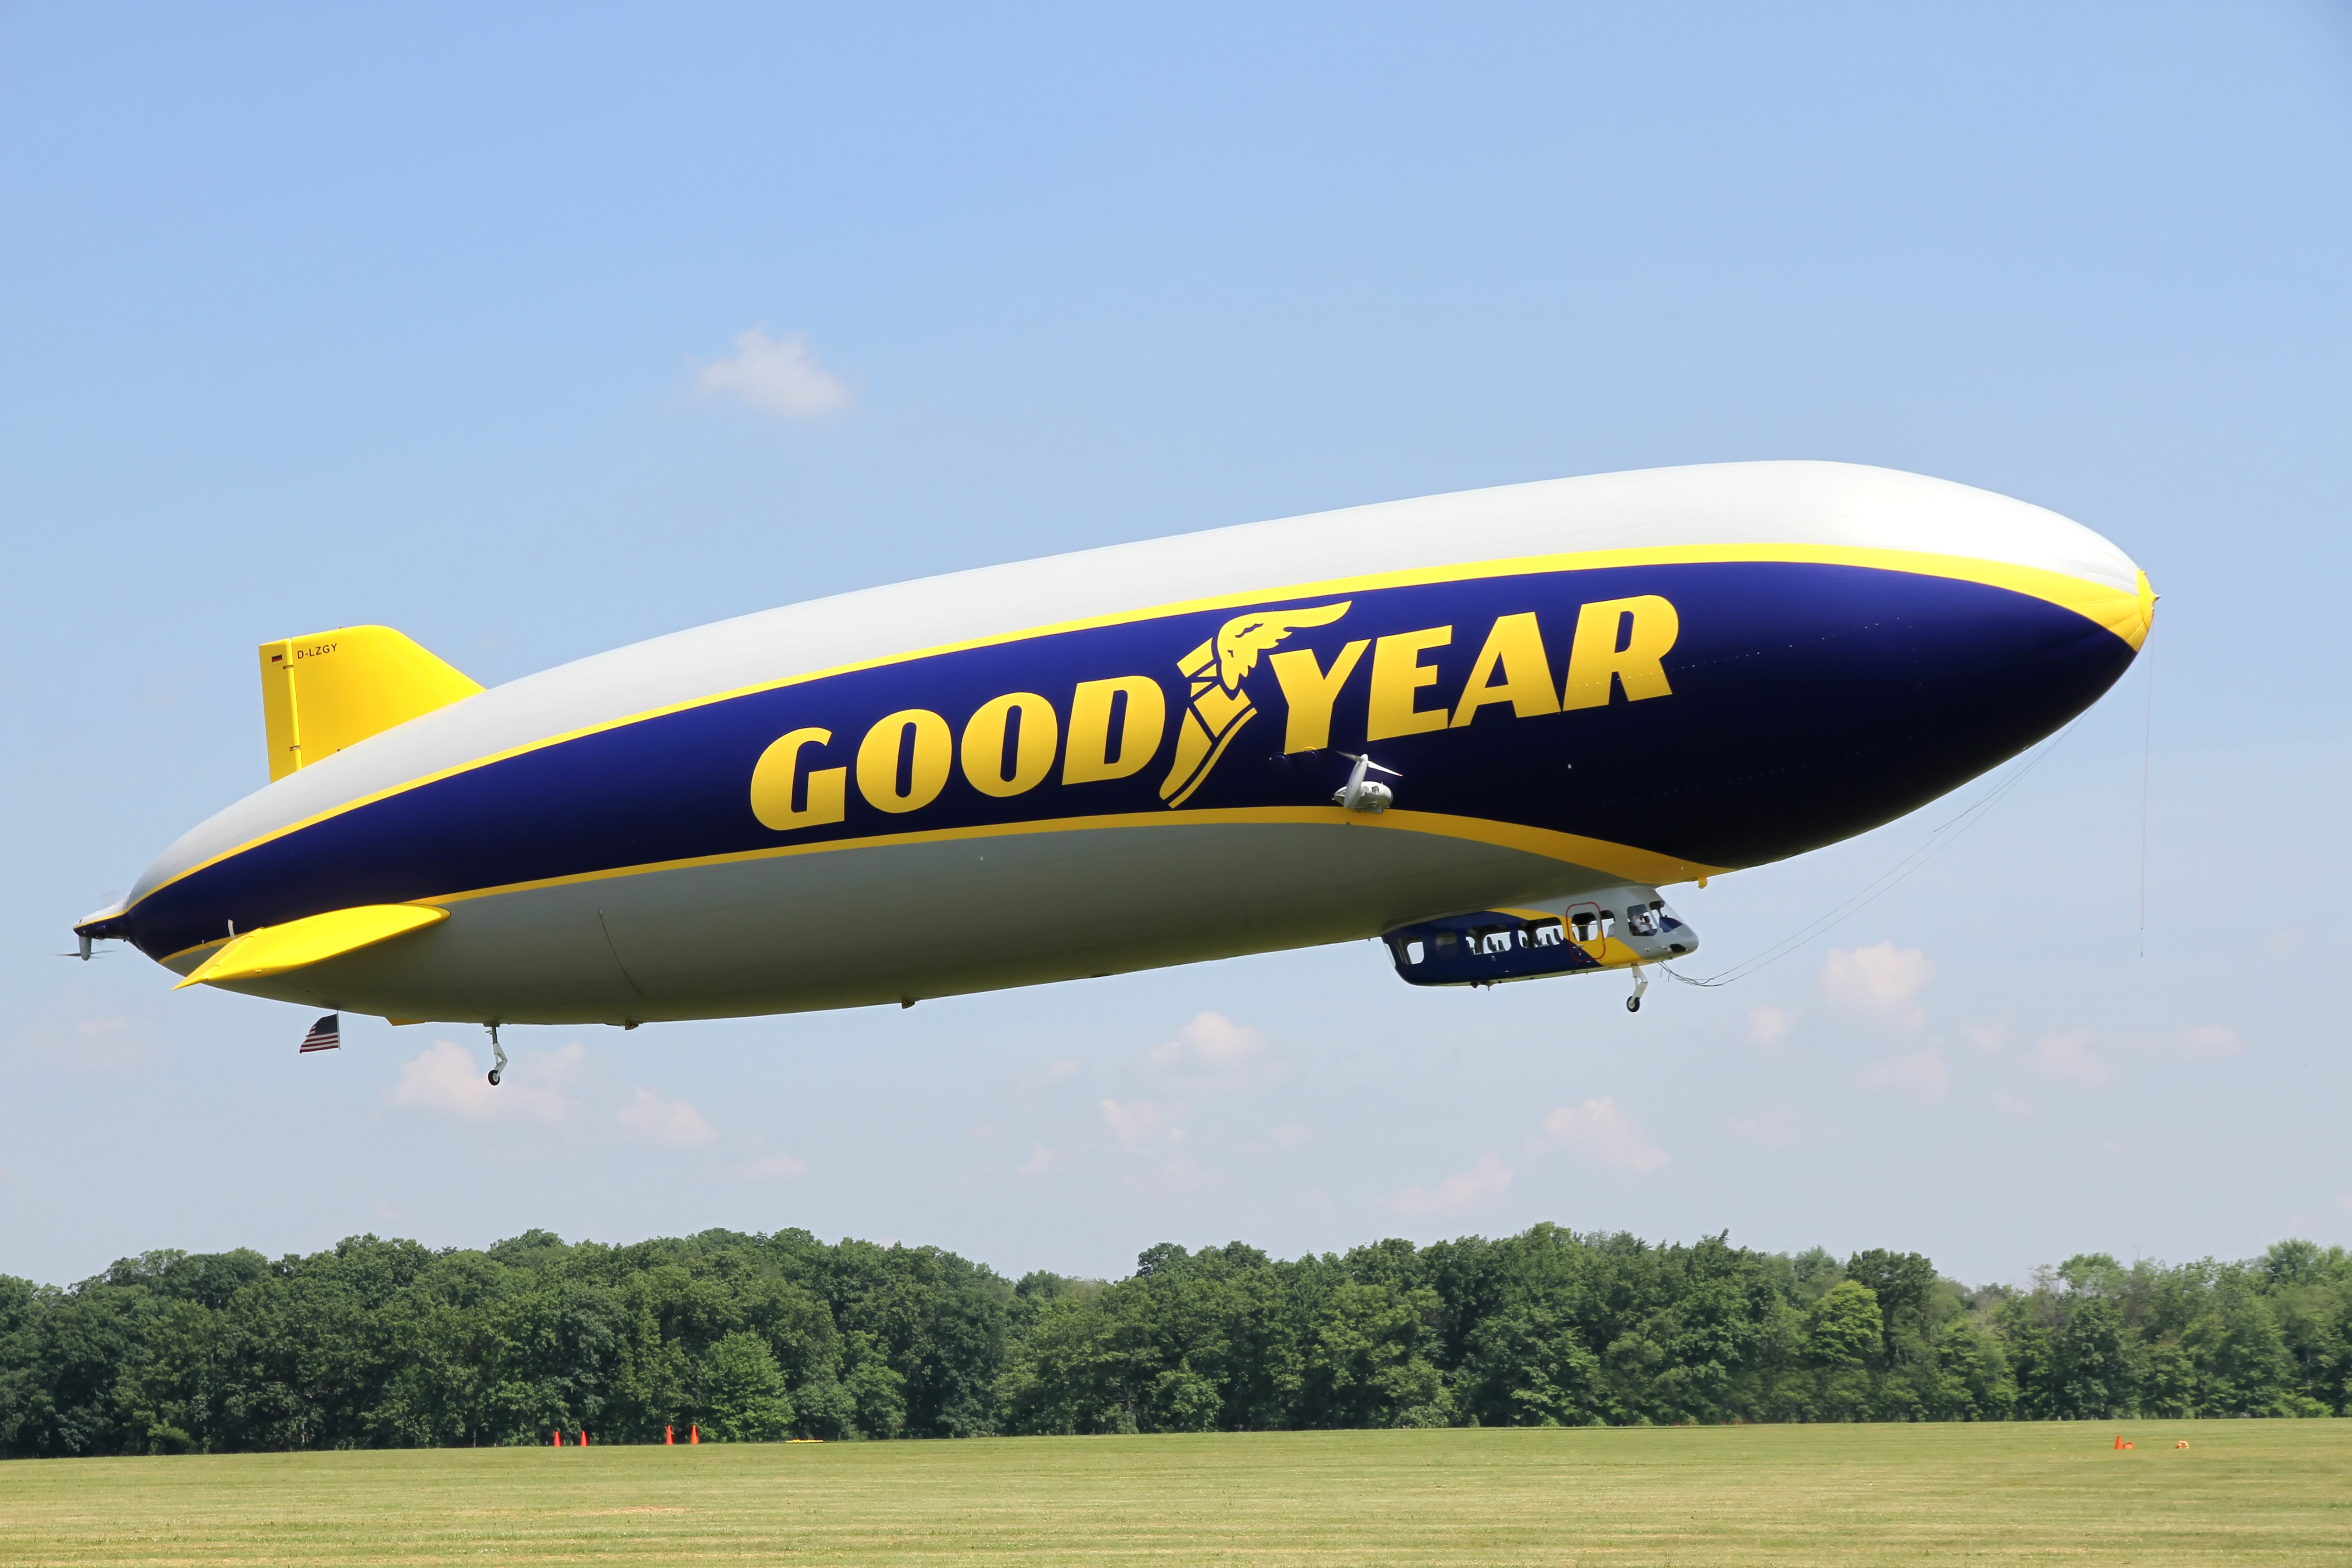 Fullintel's expertly-curated media monitoring helps Goodyear stay on top of the news that matters